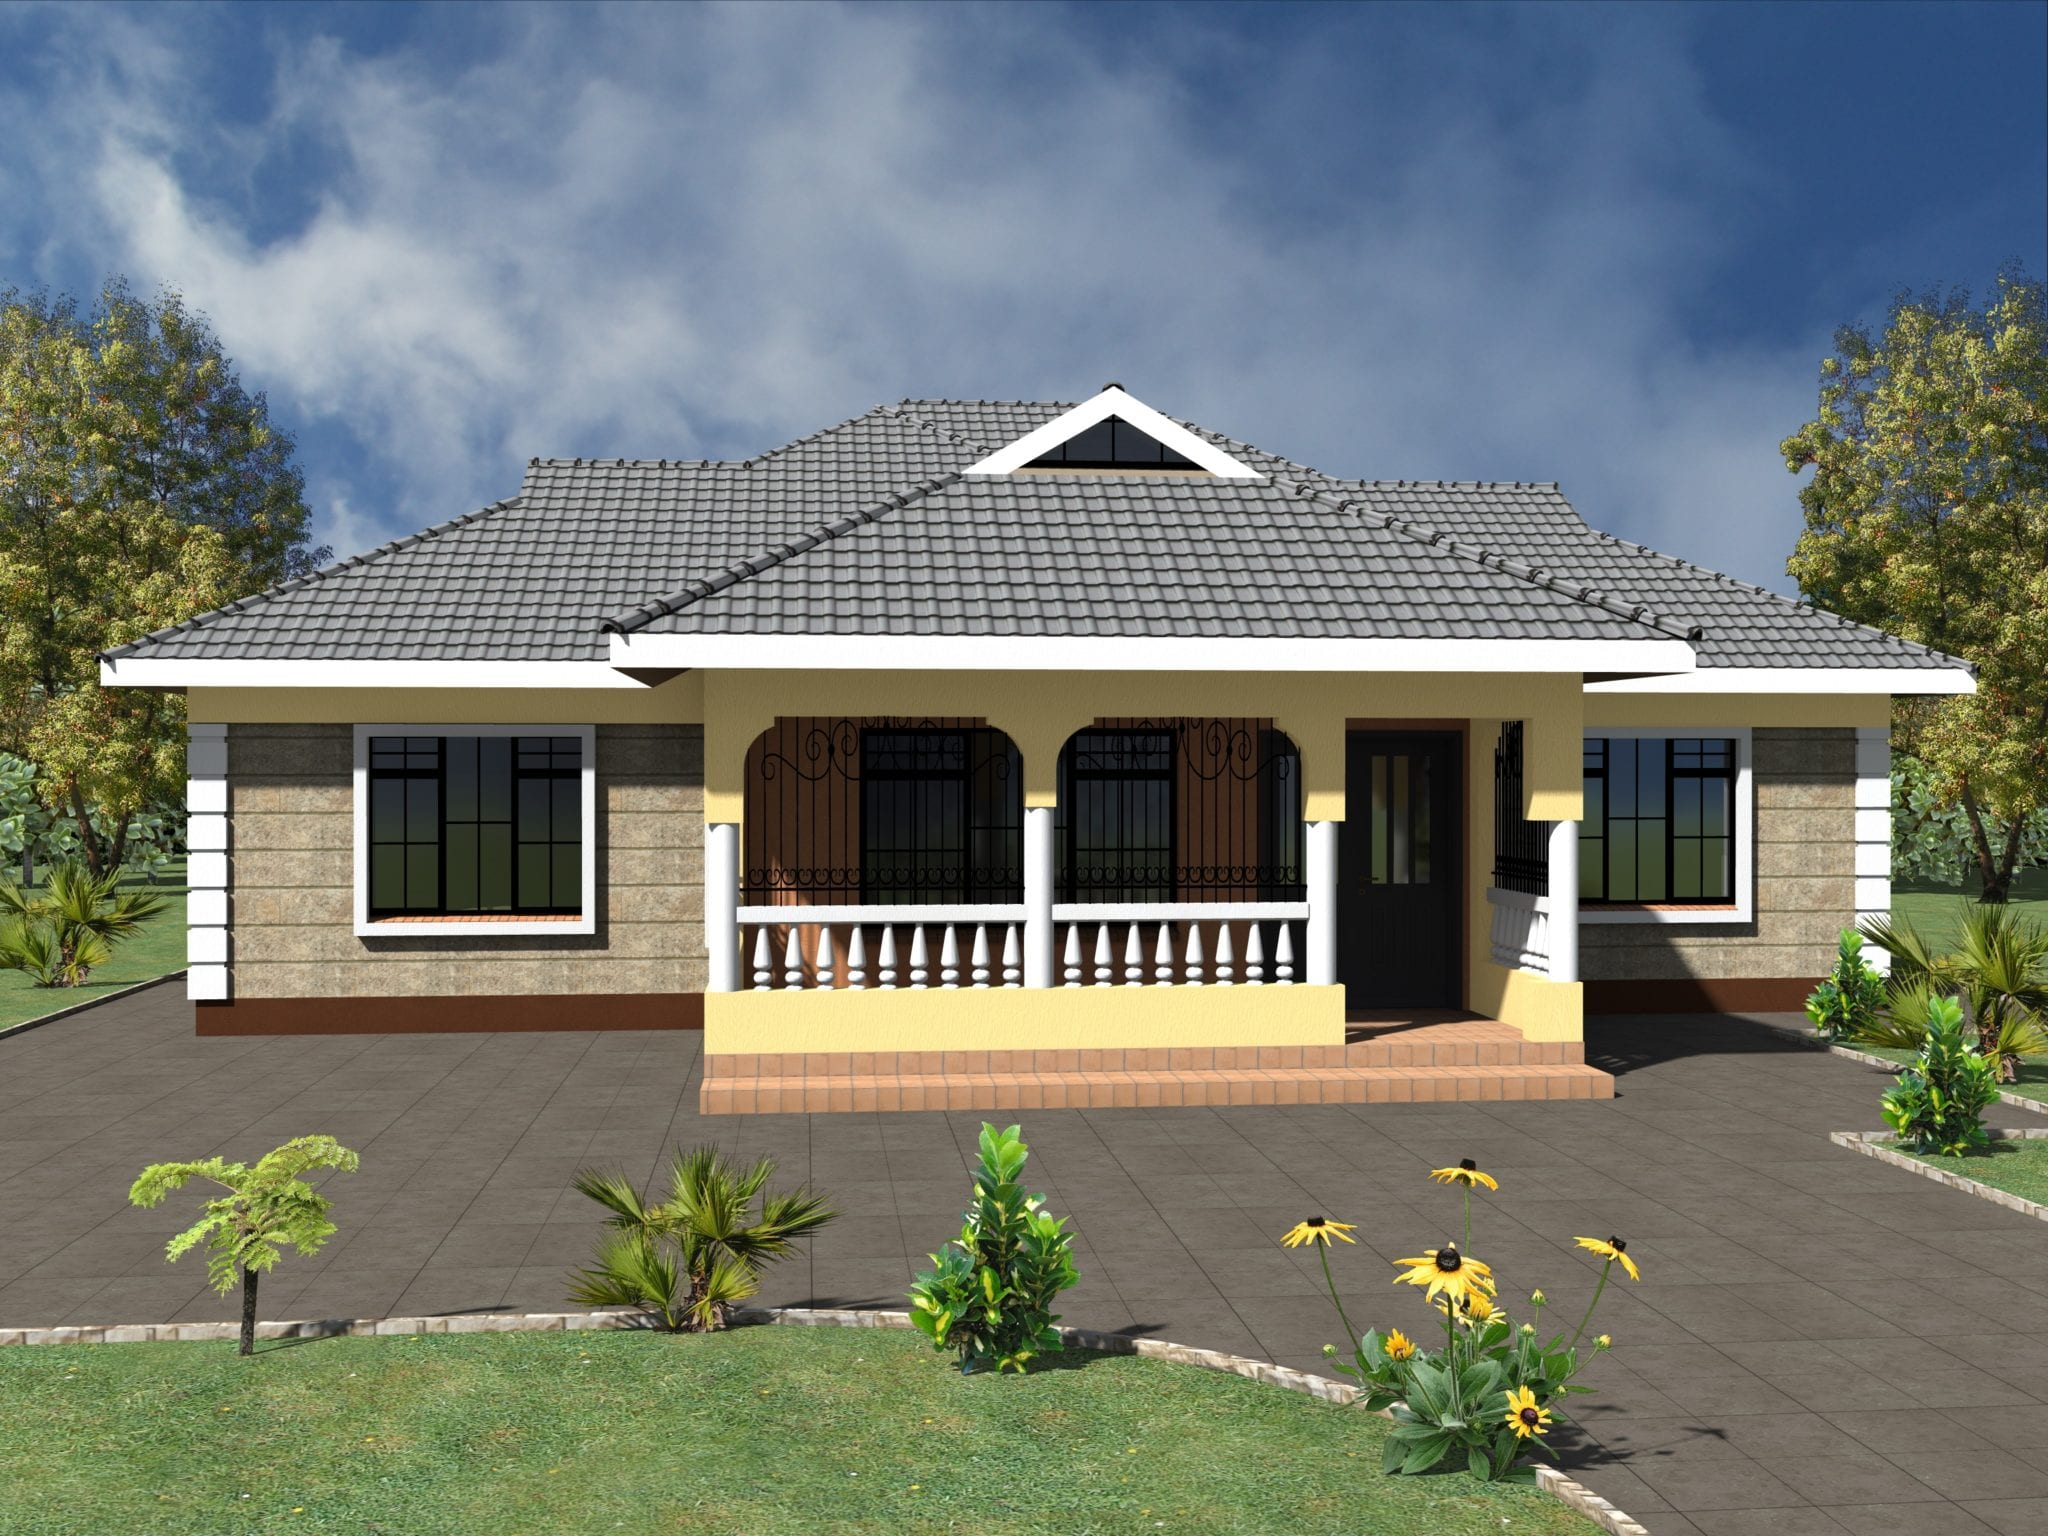 3 bedroom floor plans with garage simple 3 bedroom house plans without garage hpd consult 1304